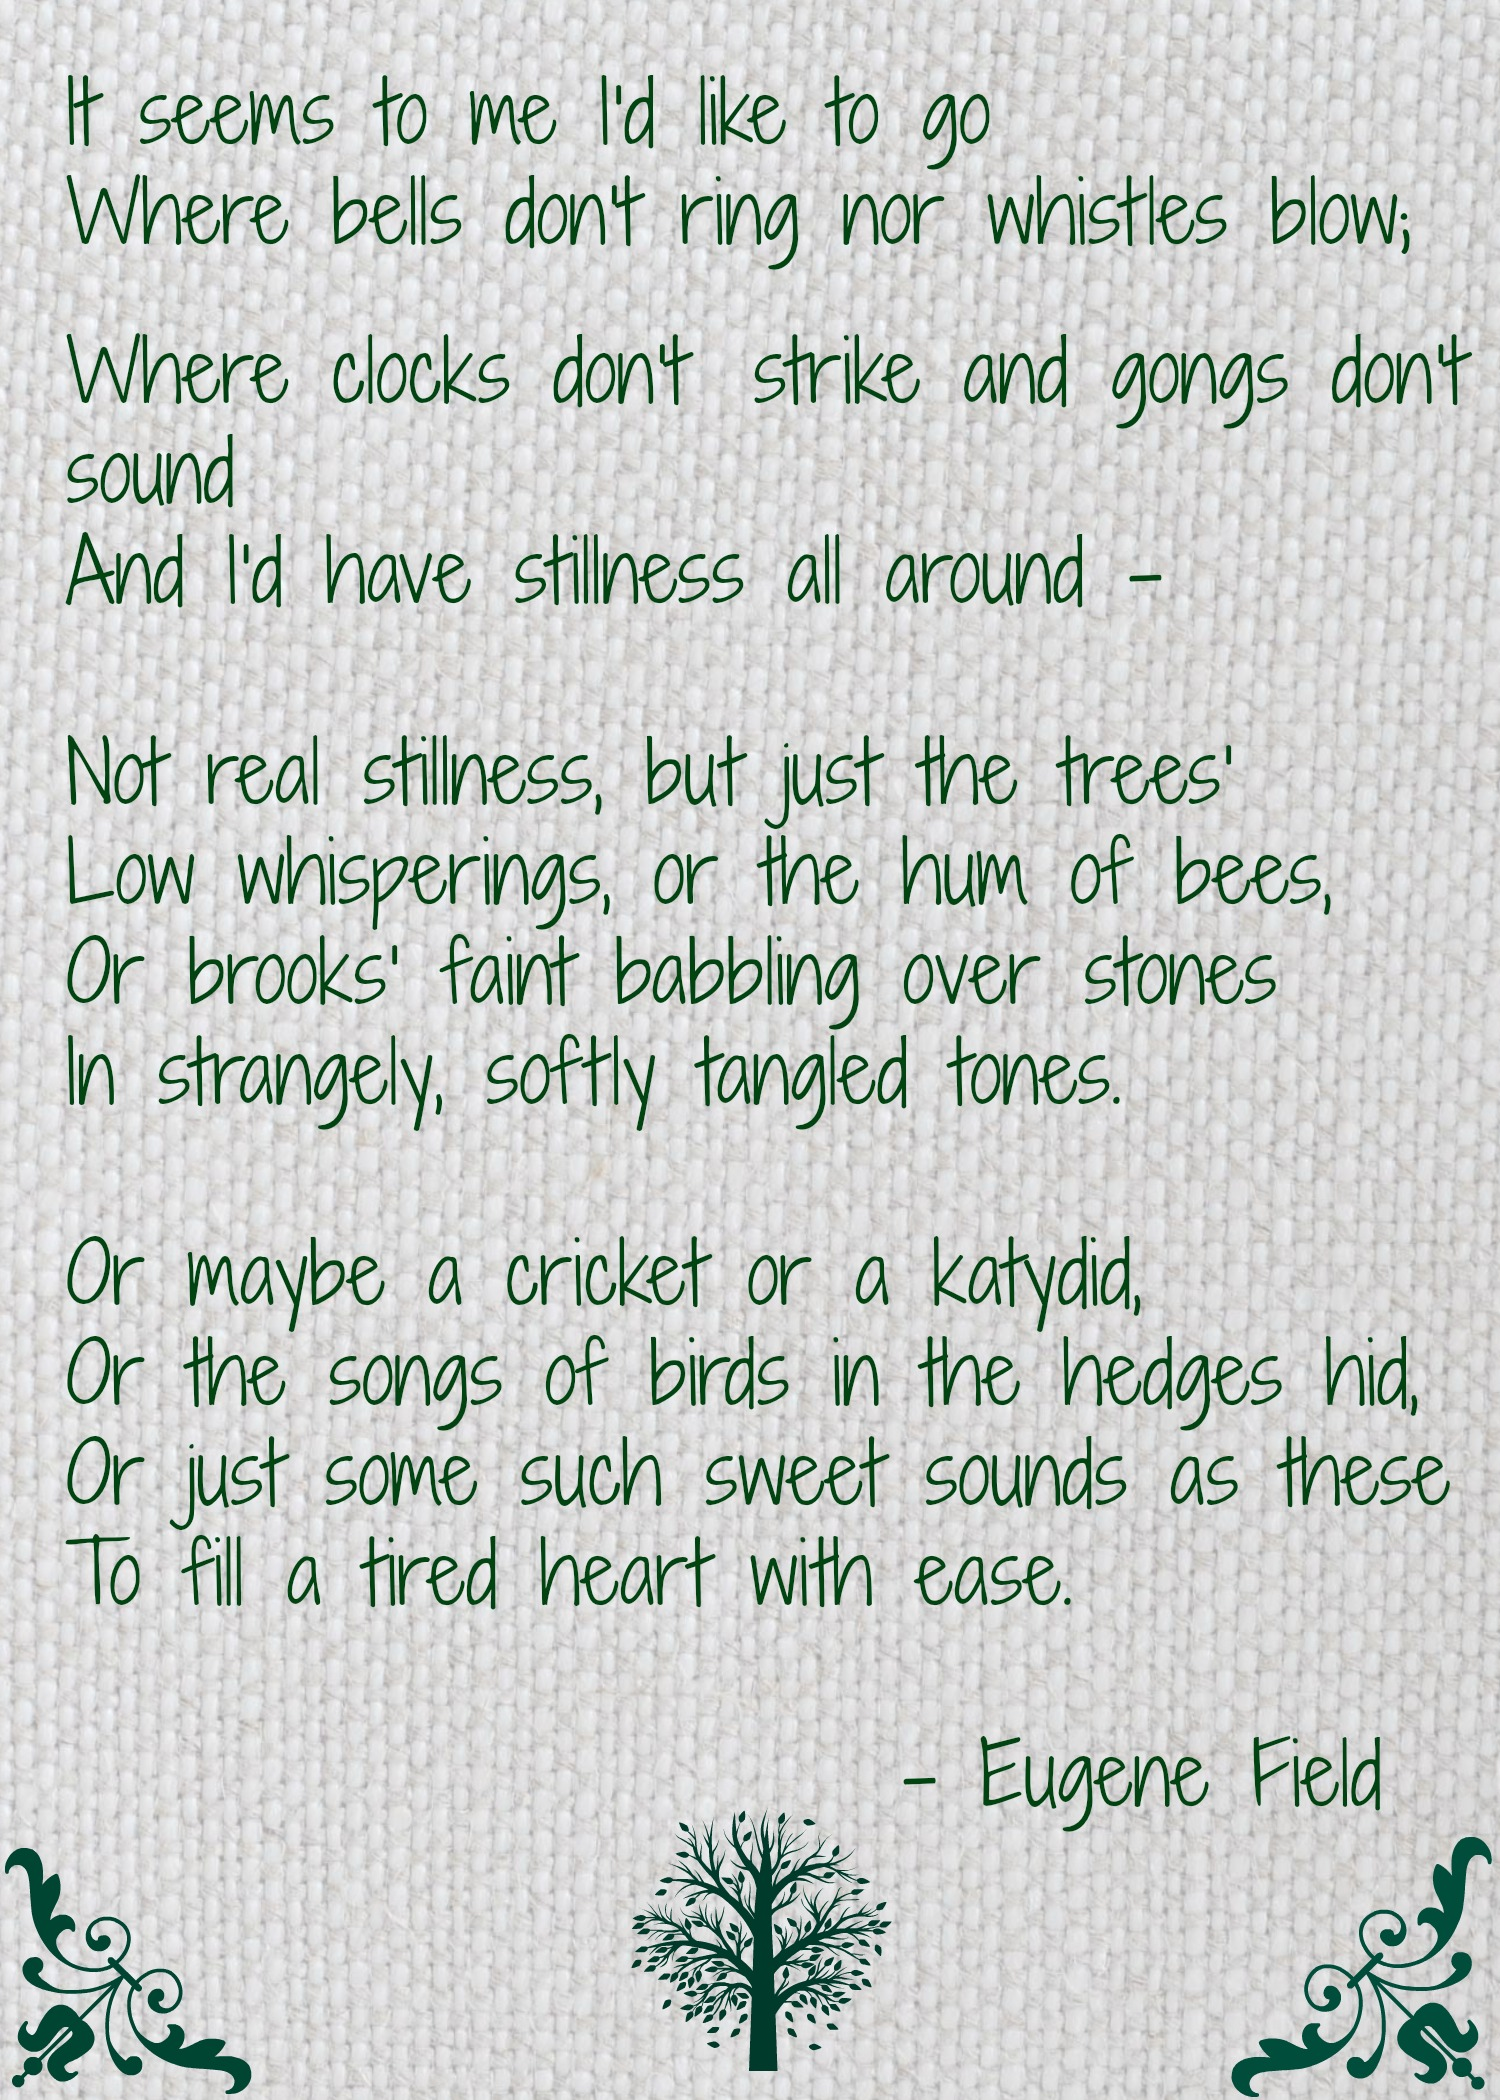 Poetry Celebrating Earth Day